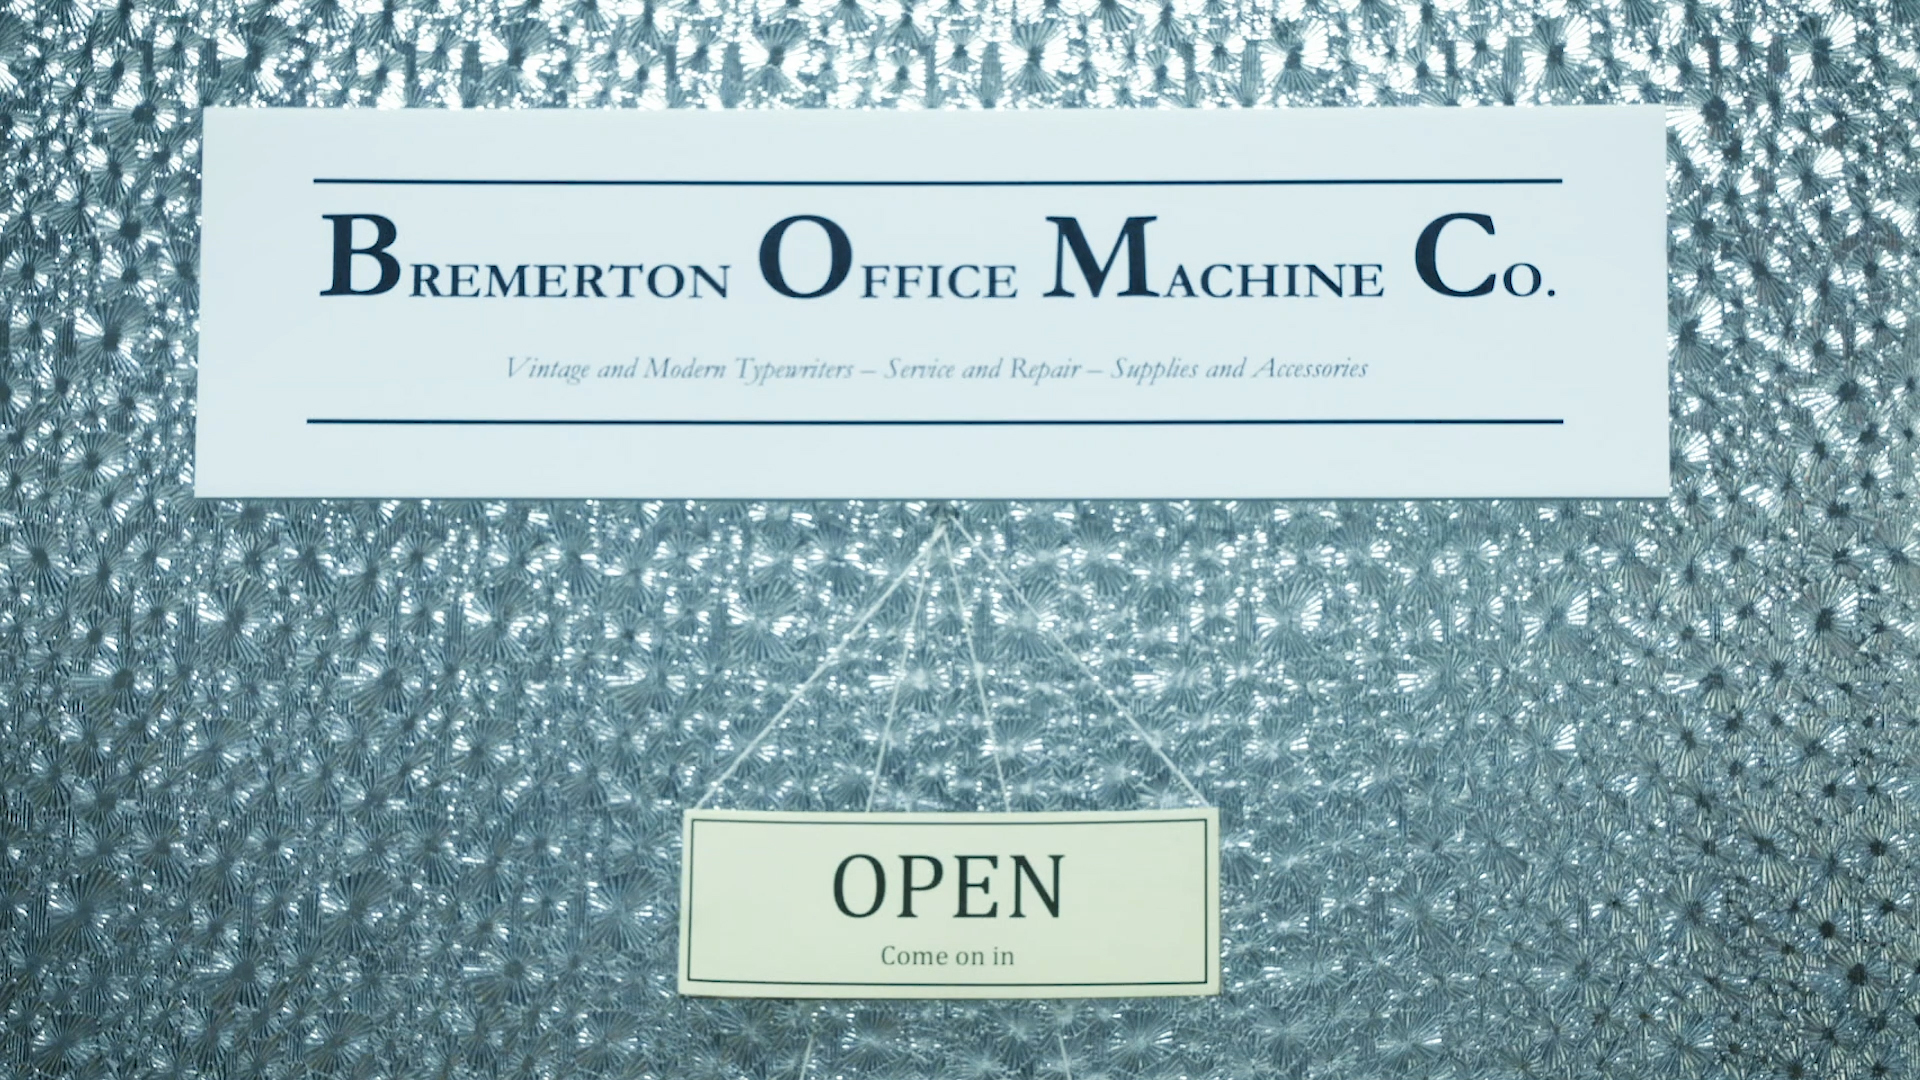 Bremerton Office Machine Co.{&nbsp;}(Image: Seattle Refined)<br><p></p>